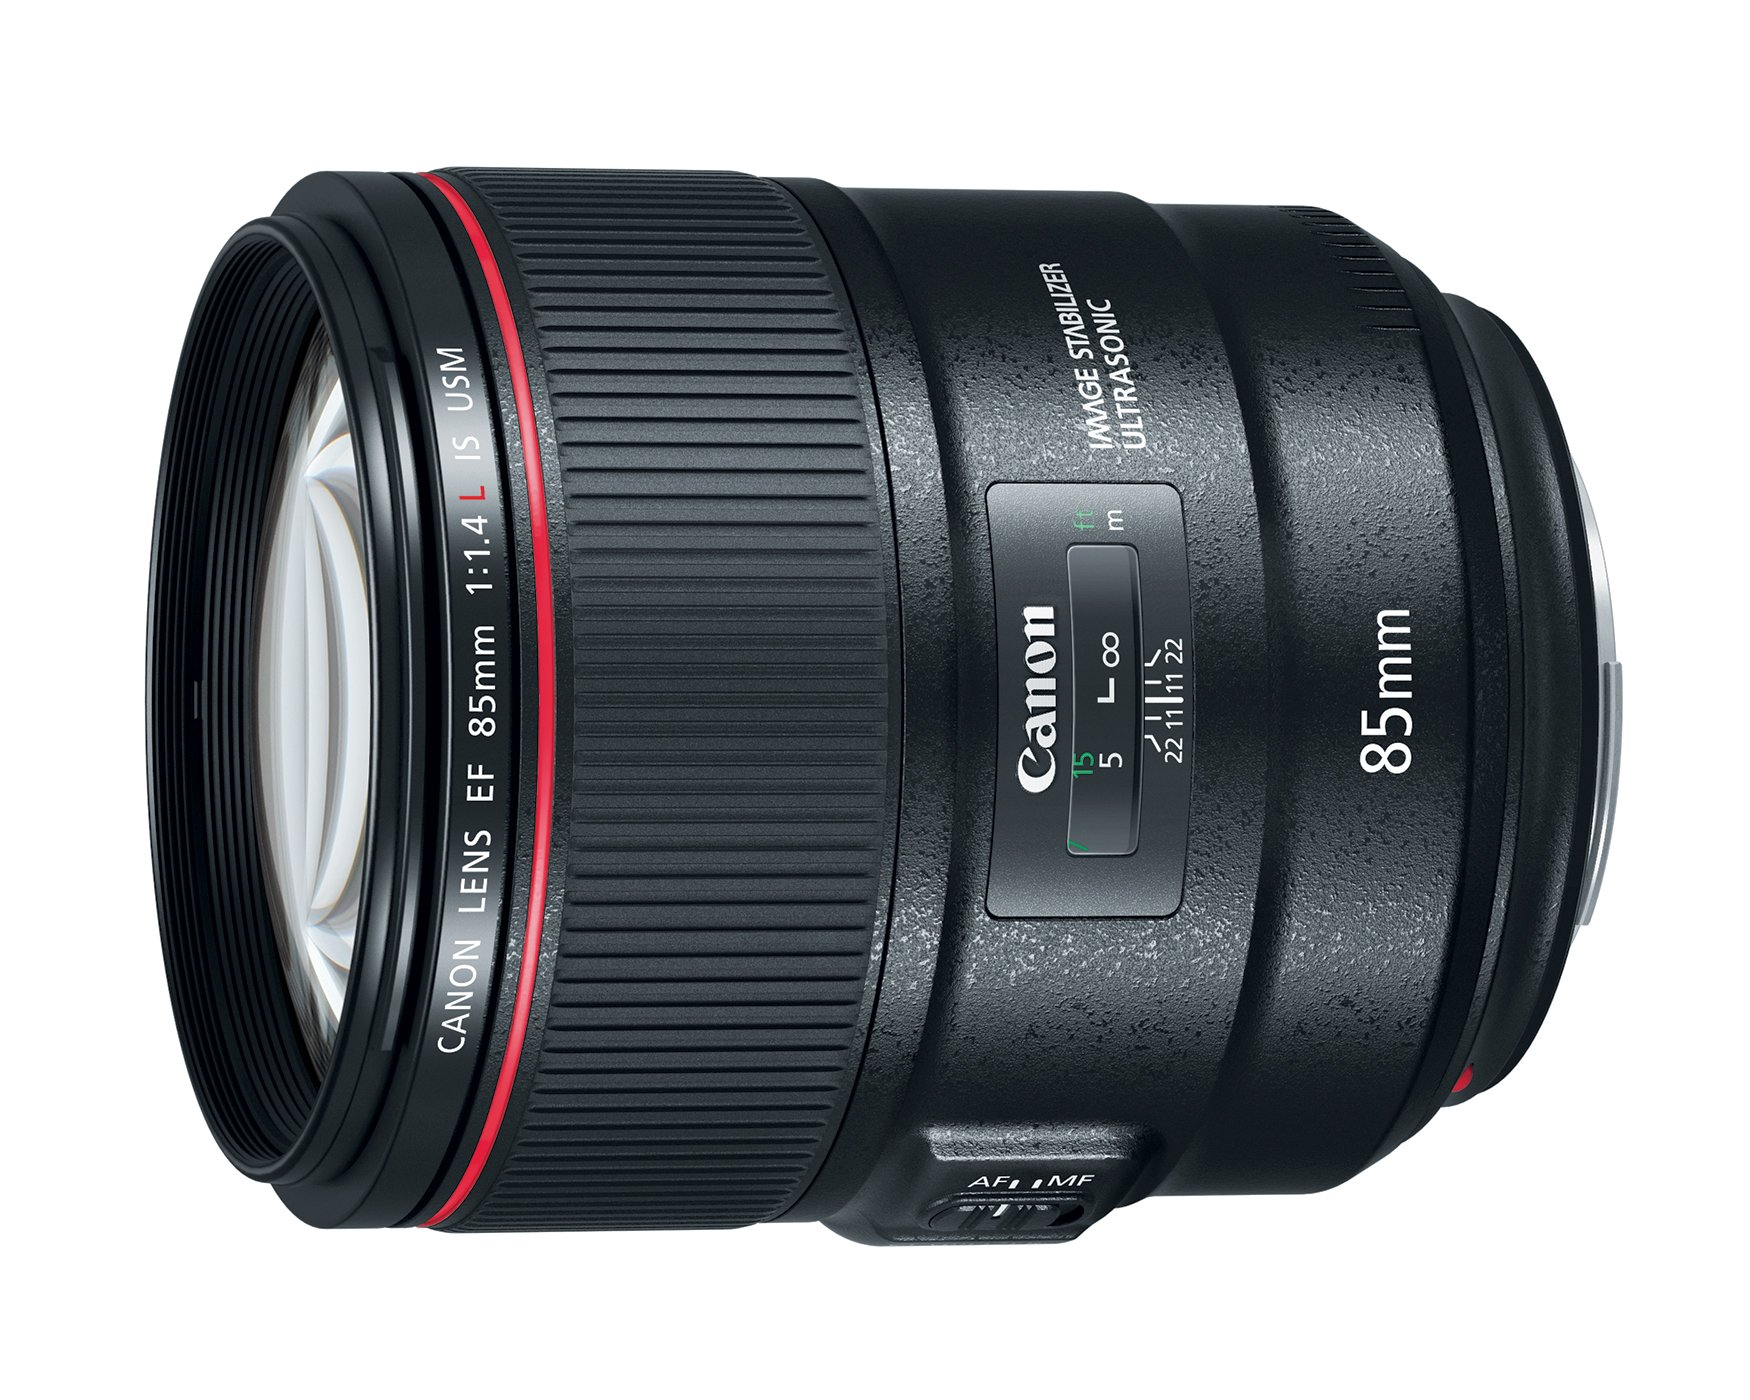 Canon EF 85mm f/1.4L IS USM - DSLR Lens with IS Capability by Canon